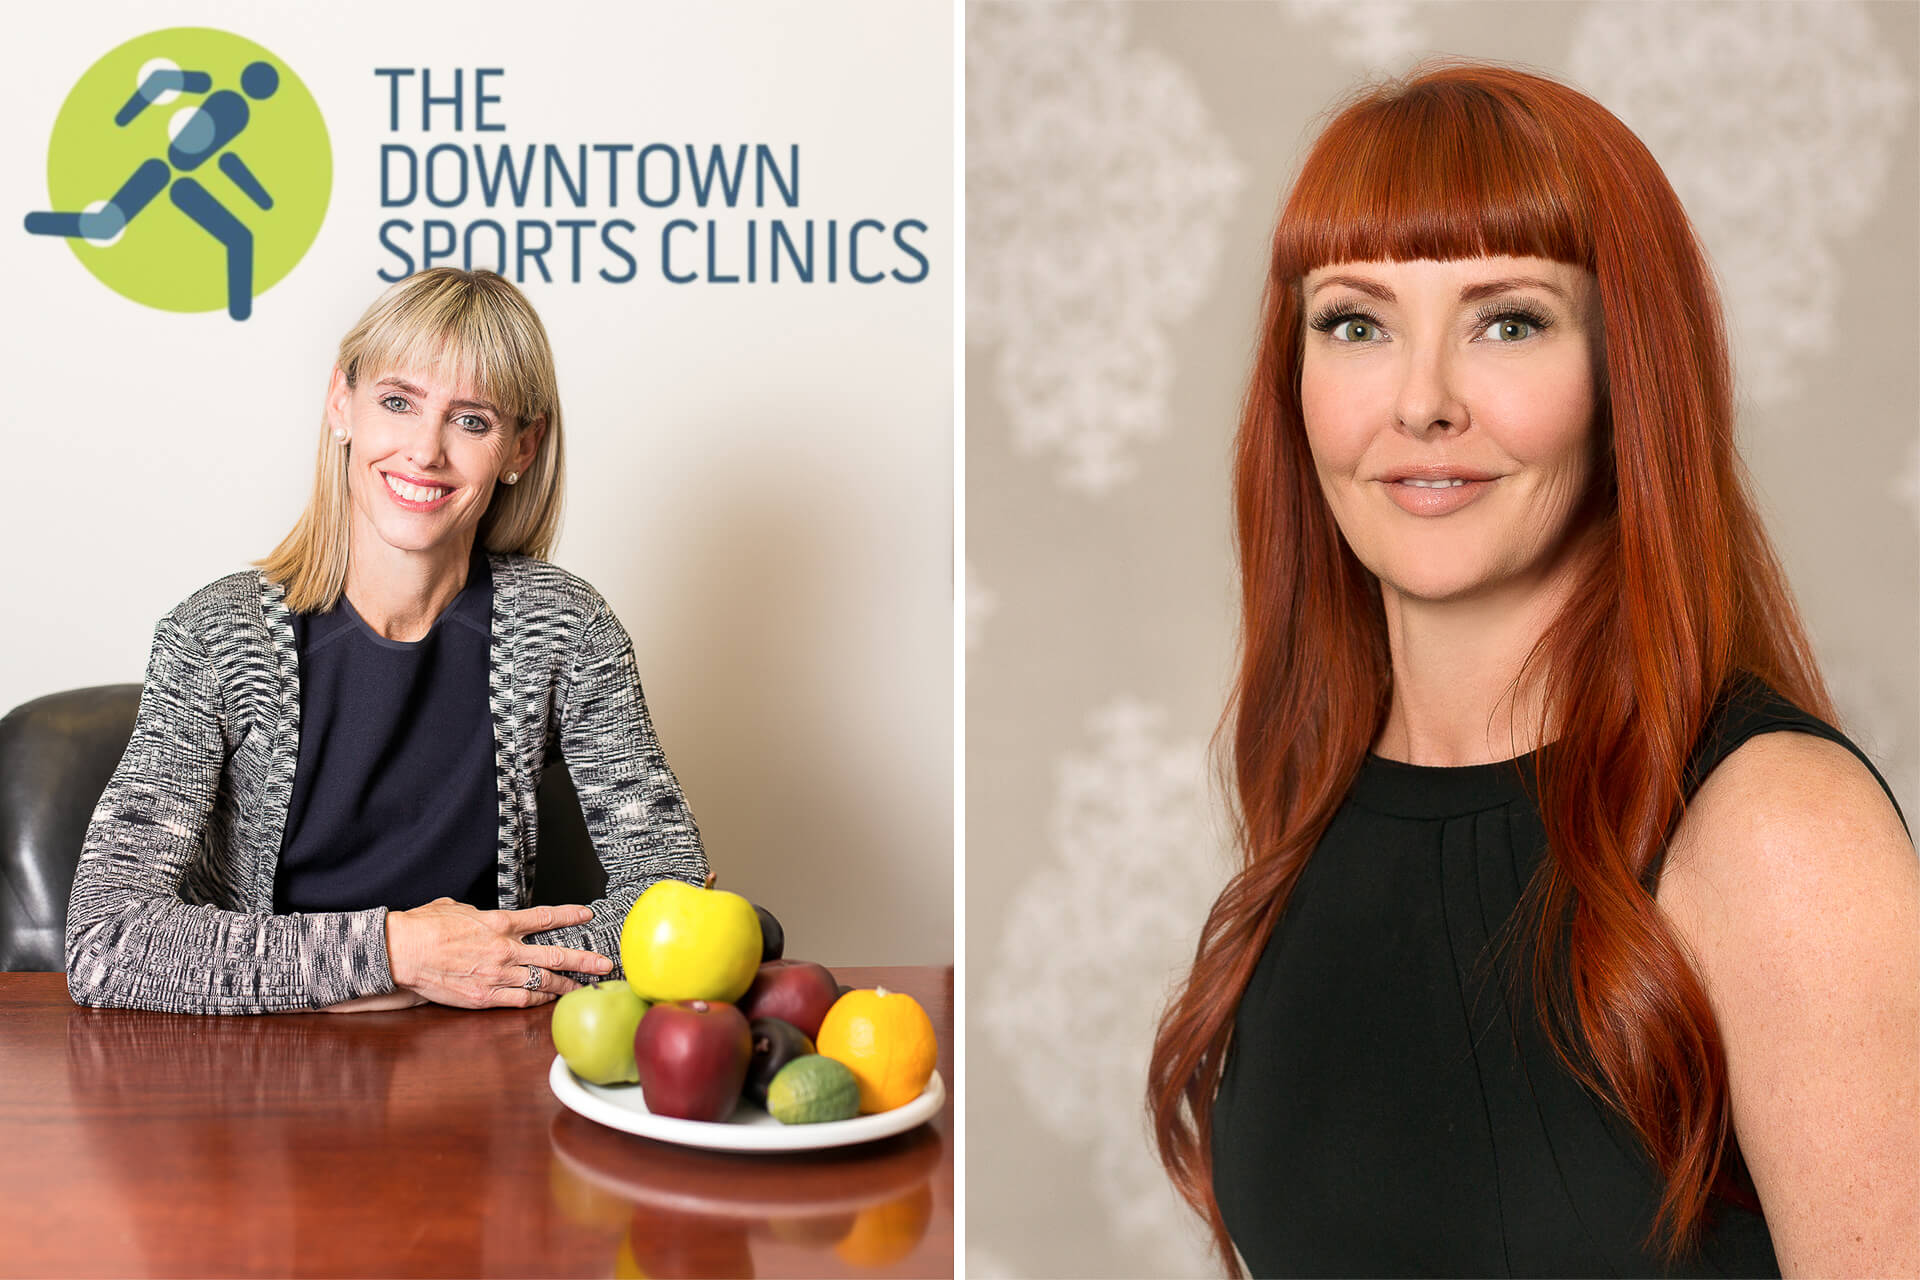 Two business portraits of a nutritionist and a beauty expert